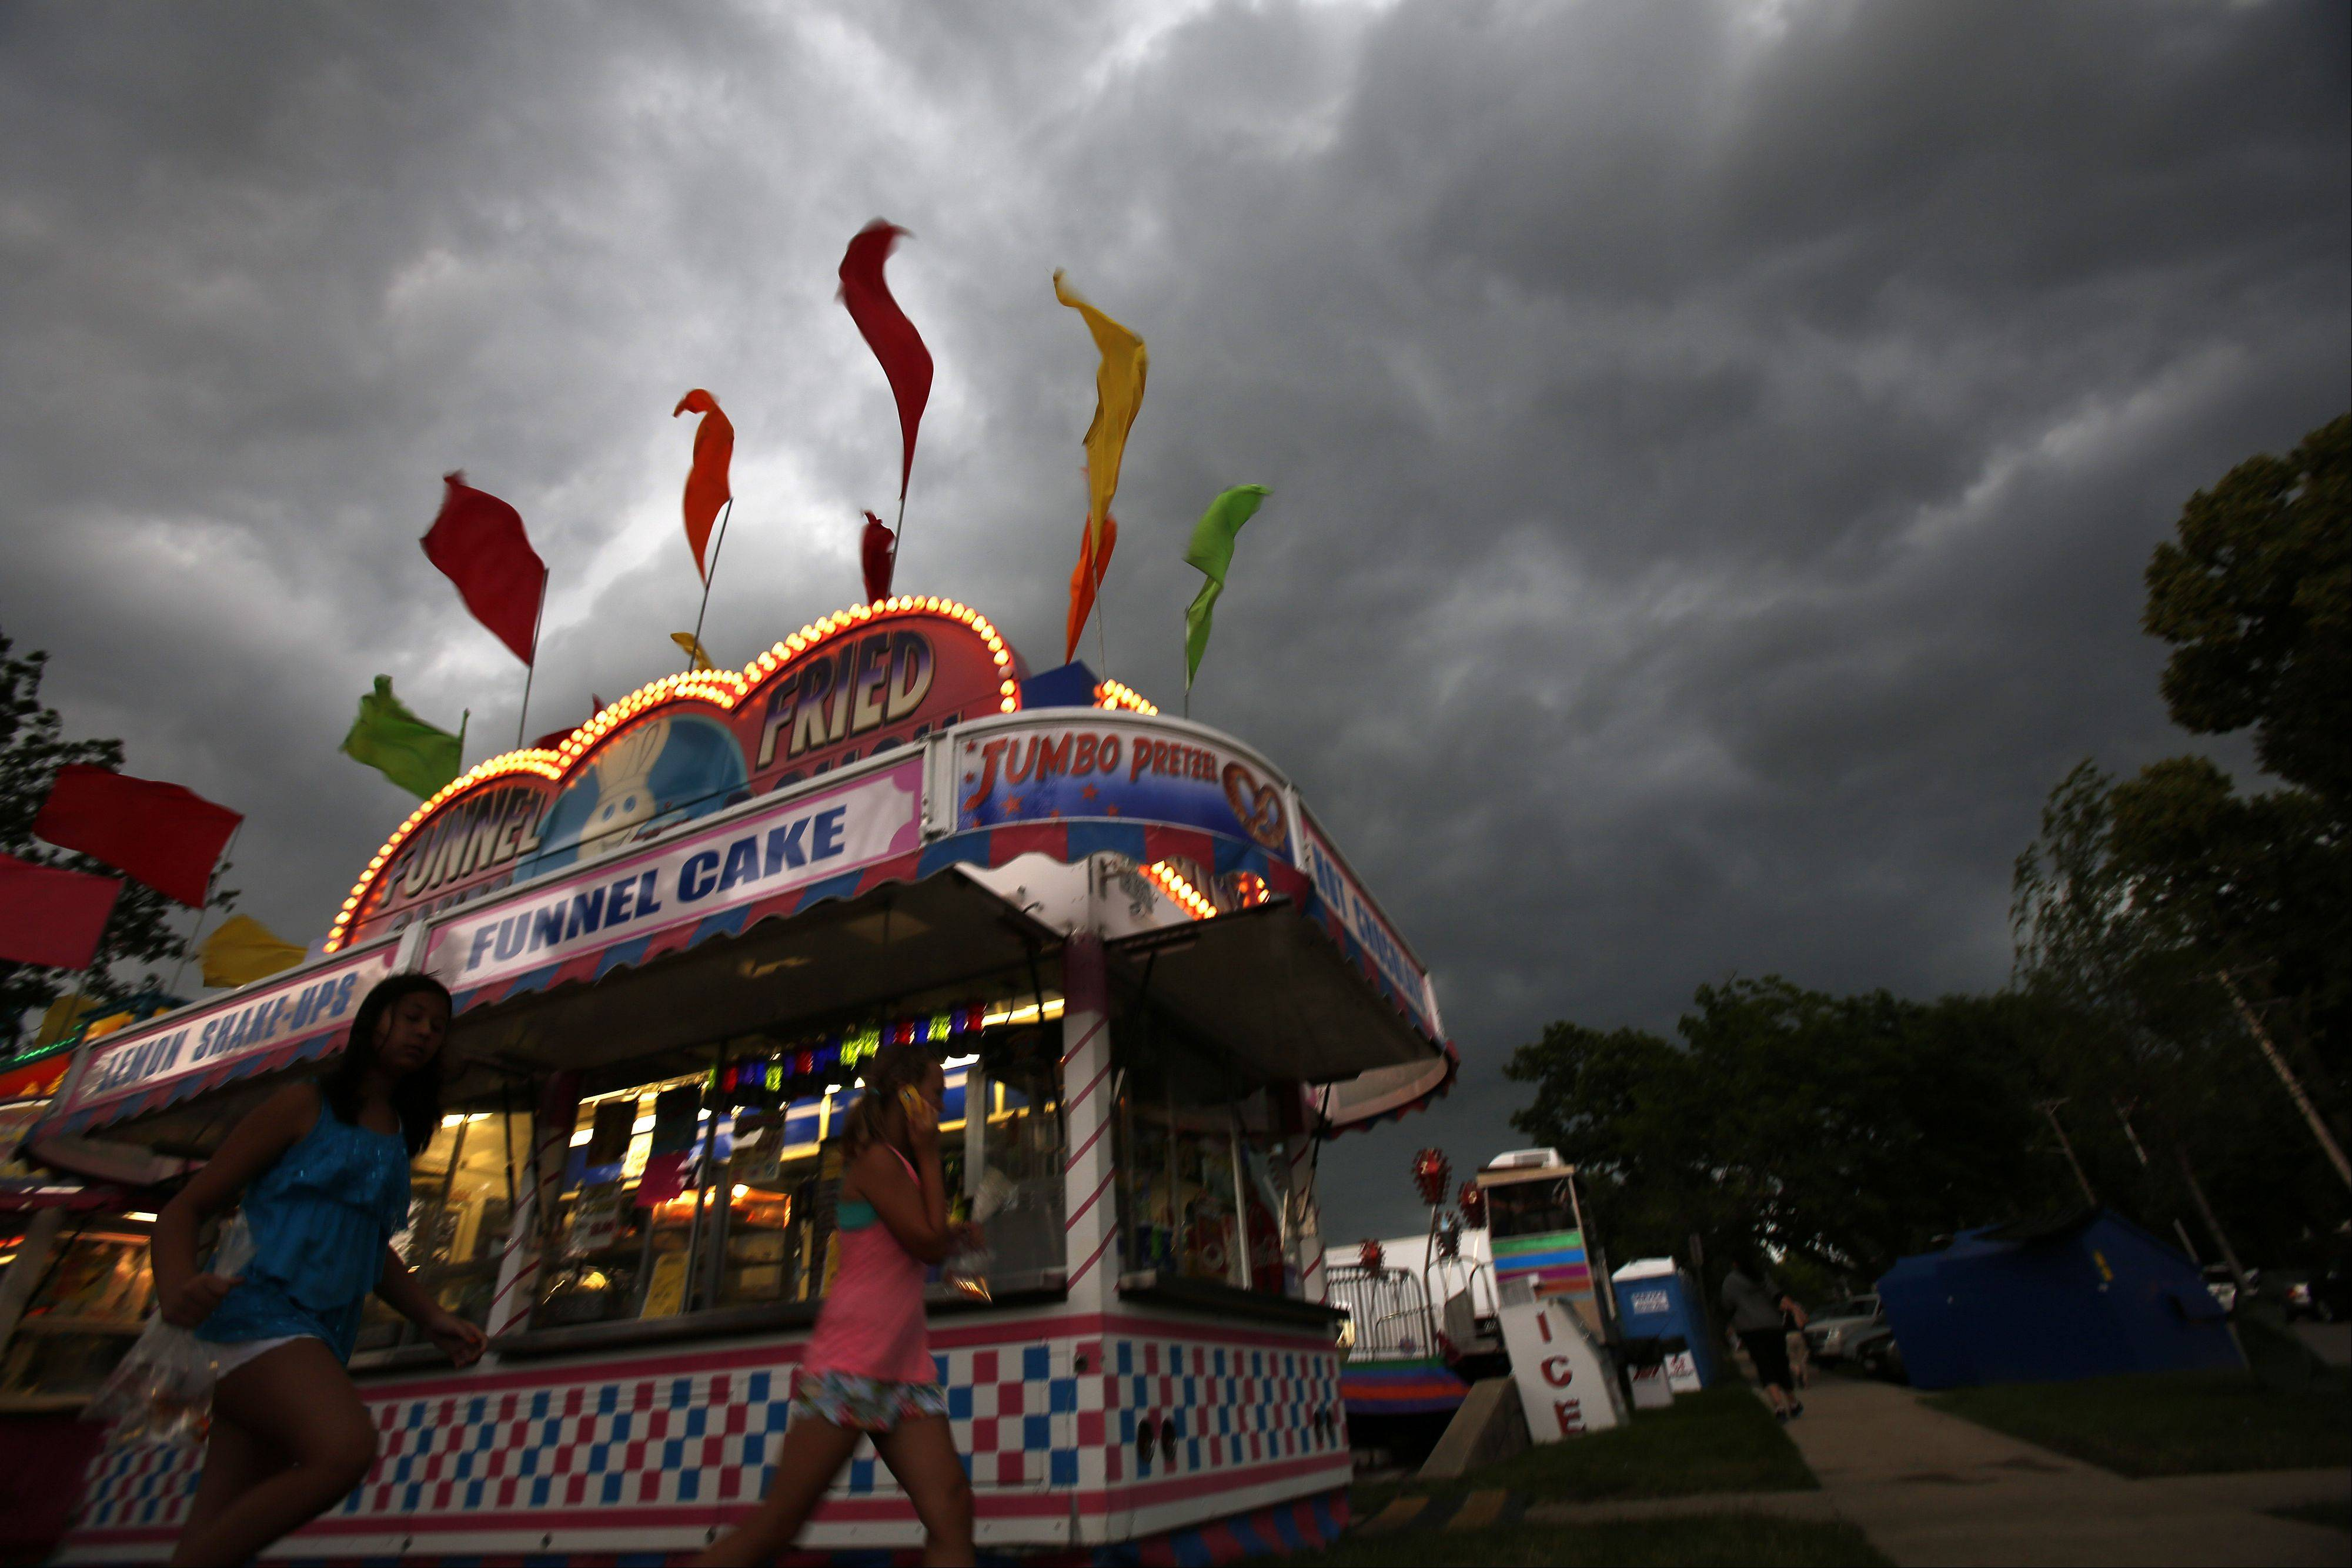 Impending thunderstorms caused organizers of Swedish Days in Geneva to put the festival on hold Friday afternoon until the weather cleared up. After about four hours, the fest reopened and crowds returned.